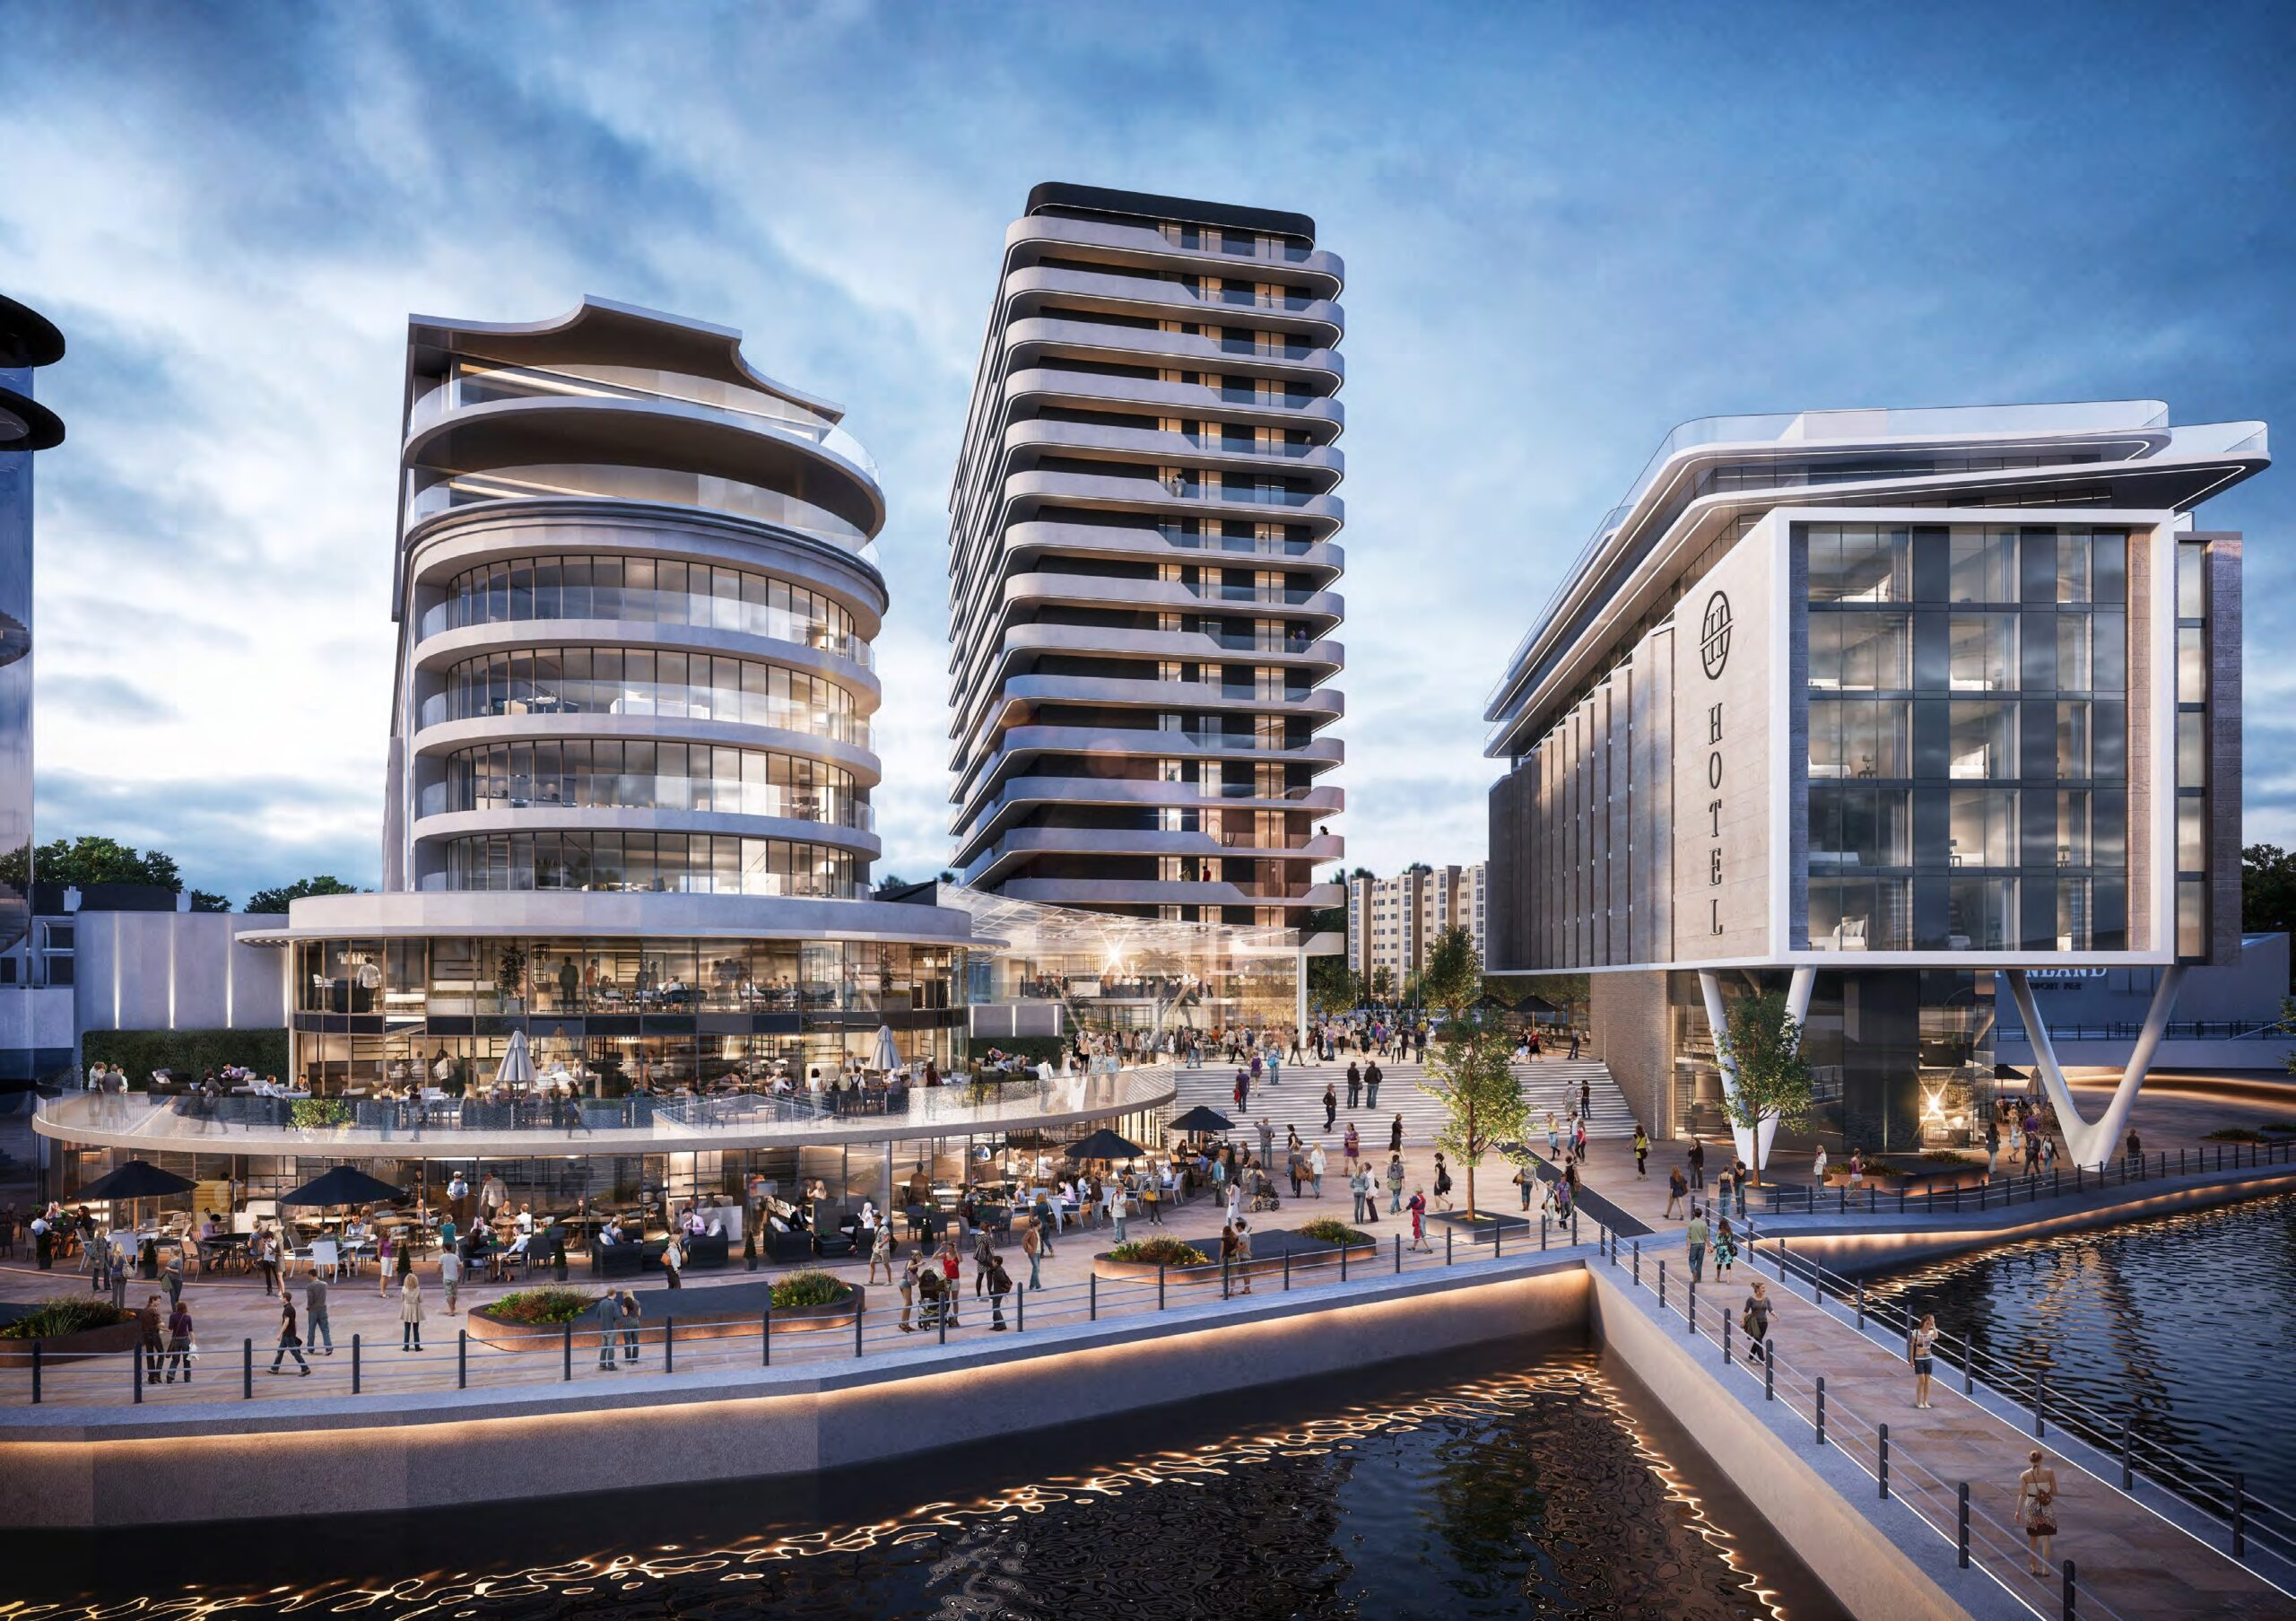 An artist's impression of how the Waterfront area of Southport could look